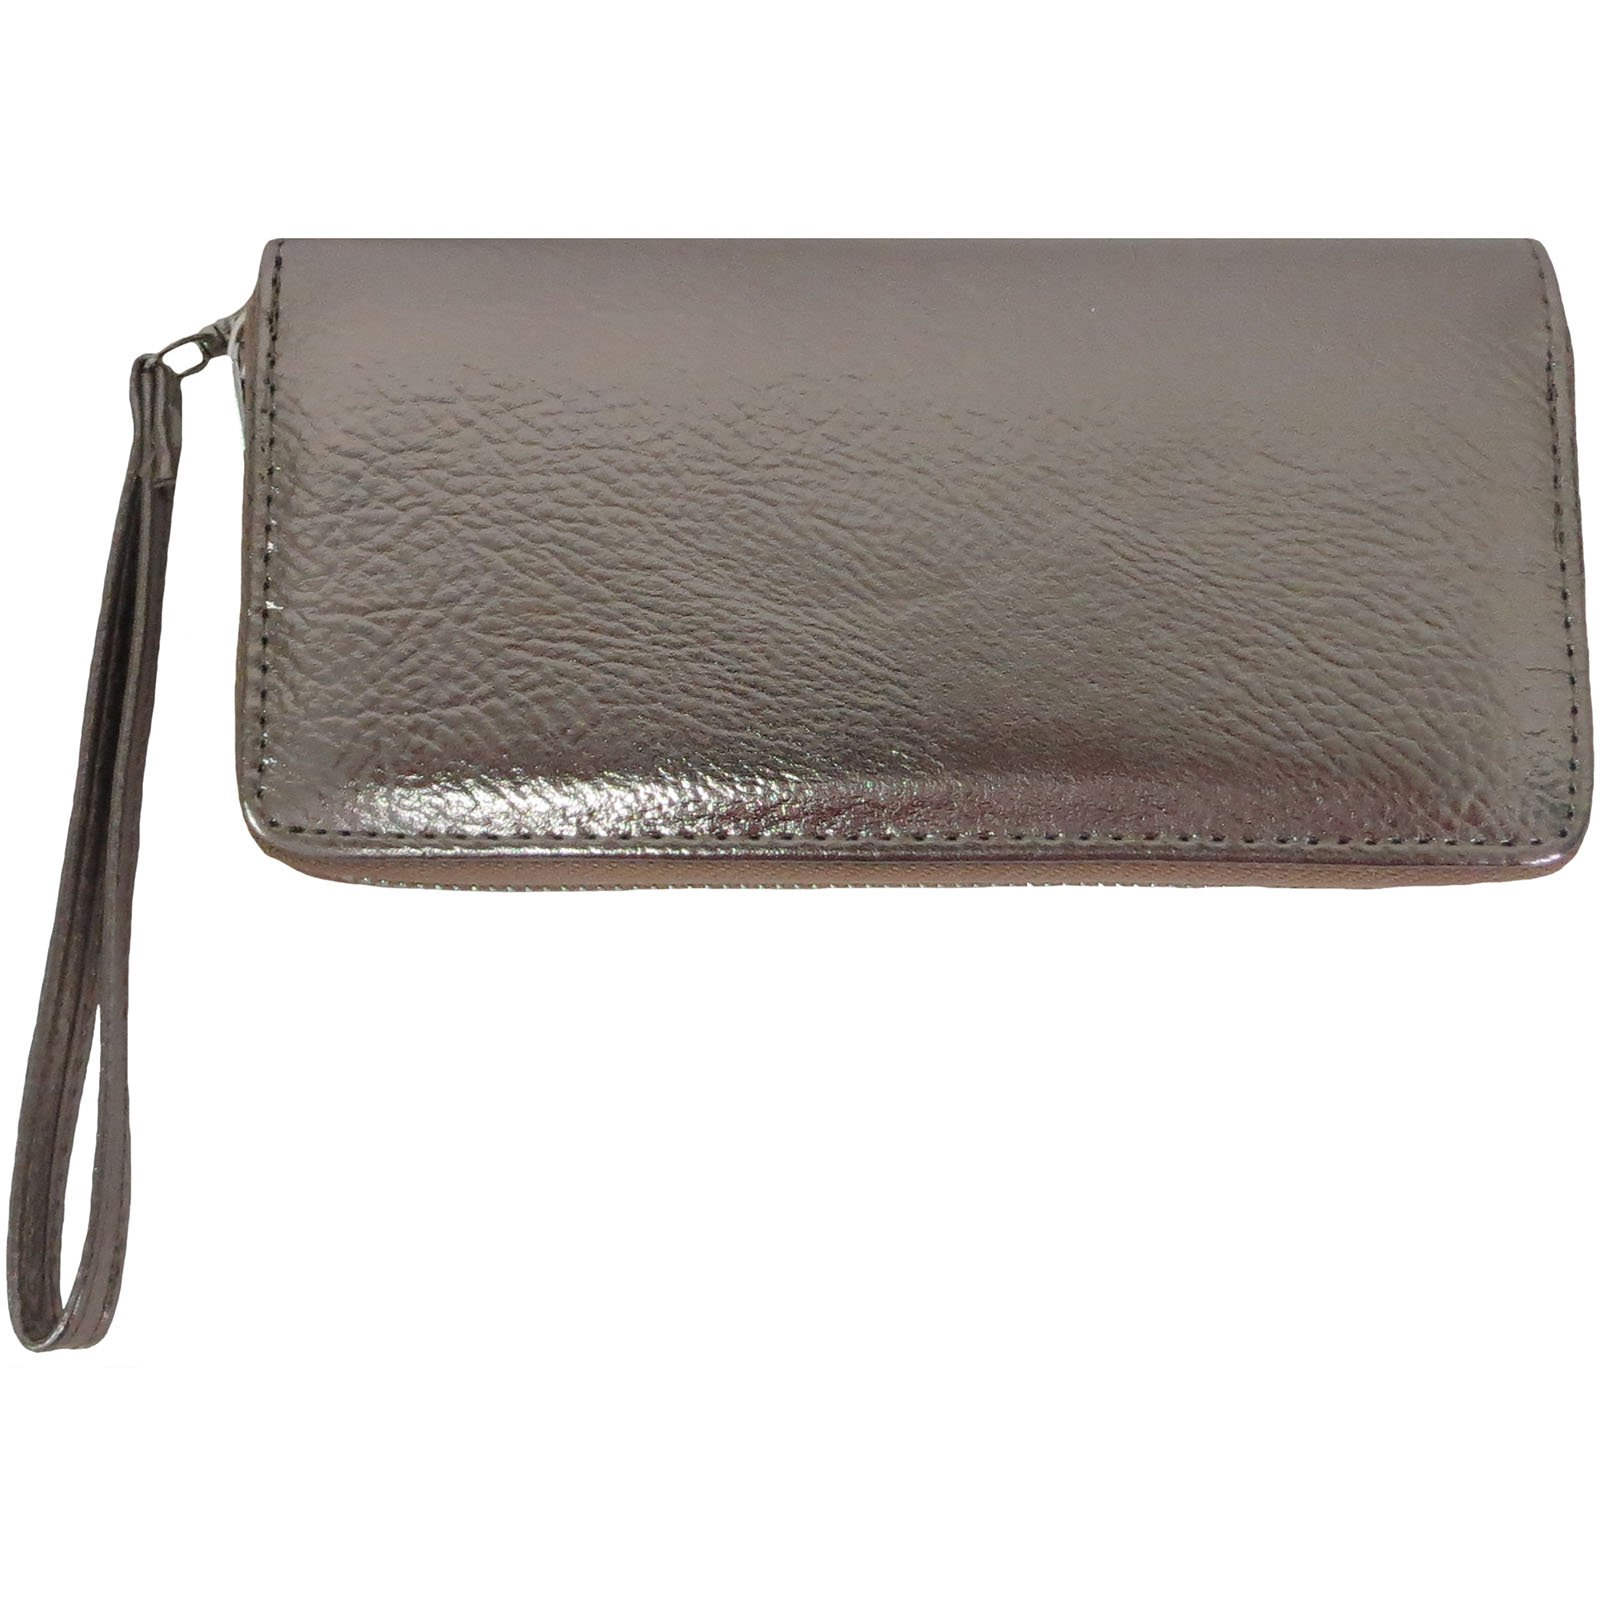 Metallic Luminous Holographic Wallet wristlet for women girls (pewter)